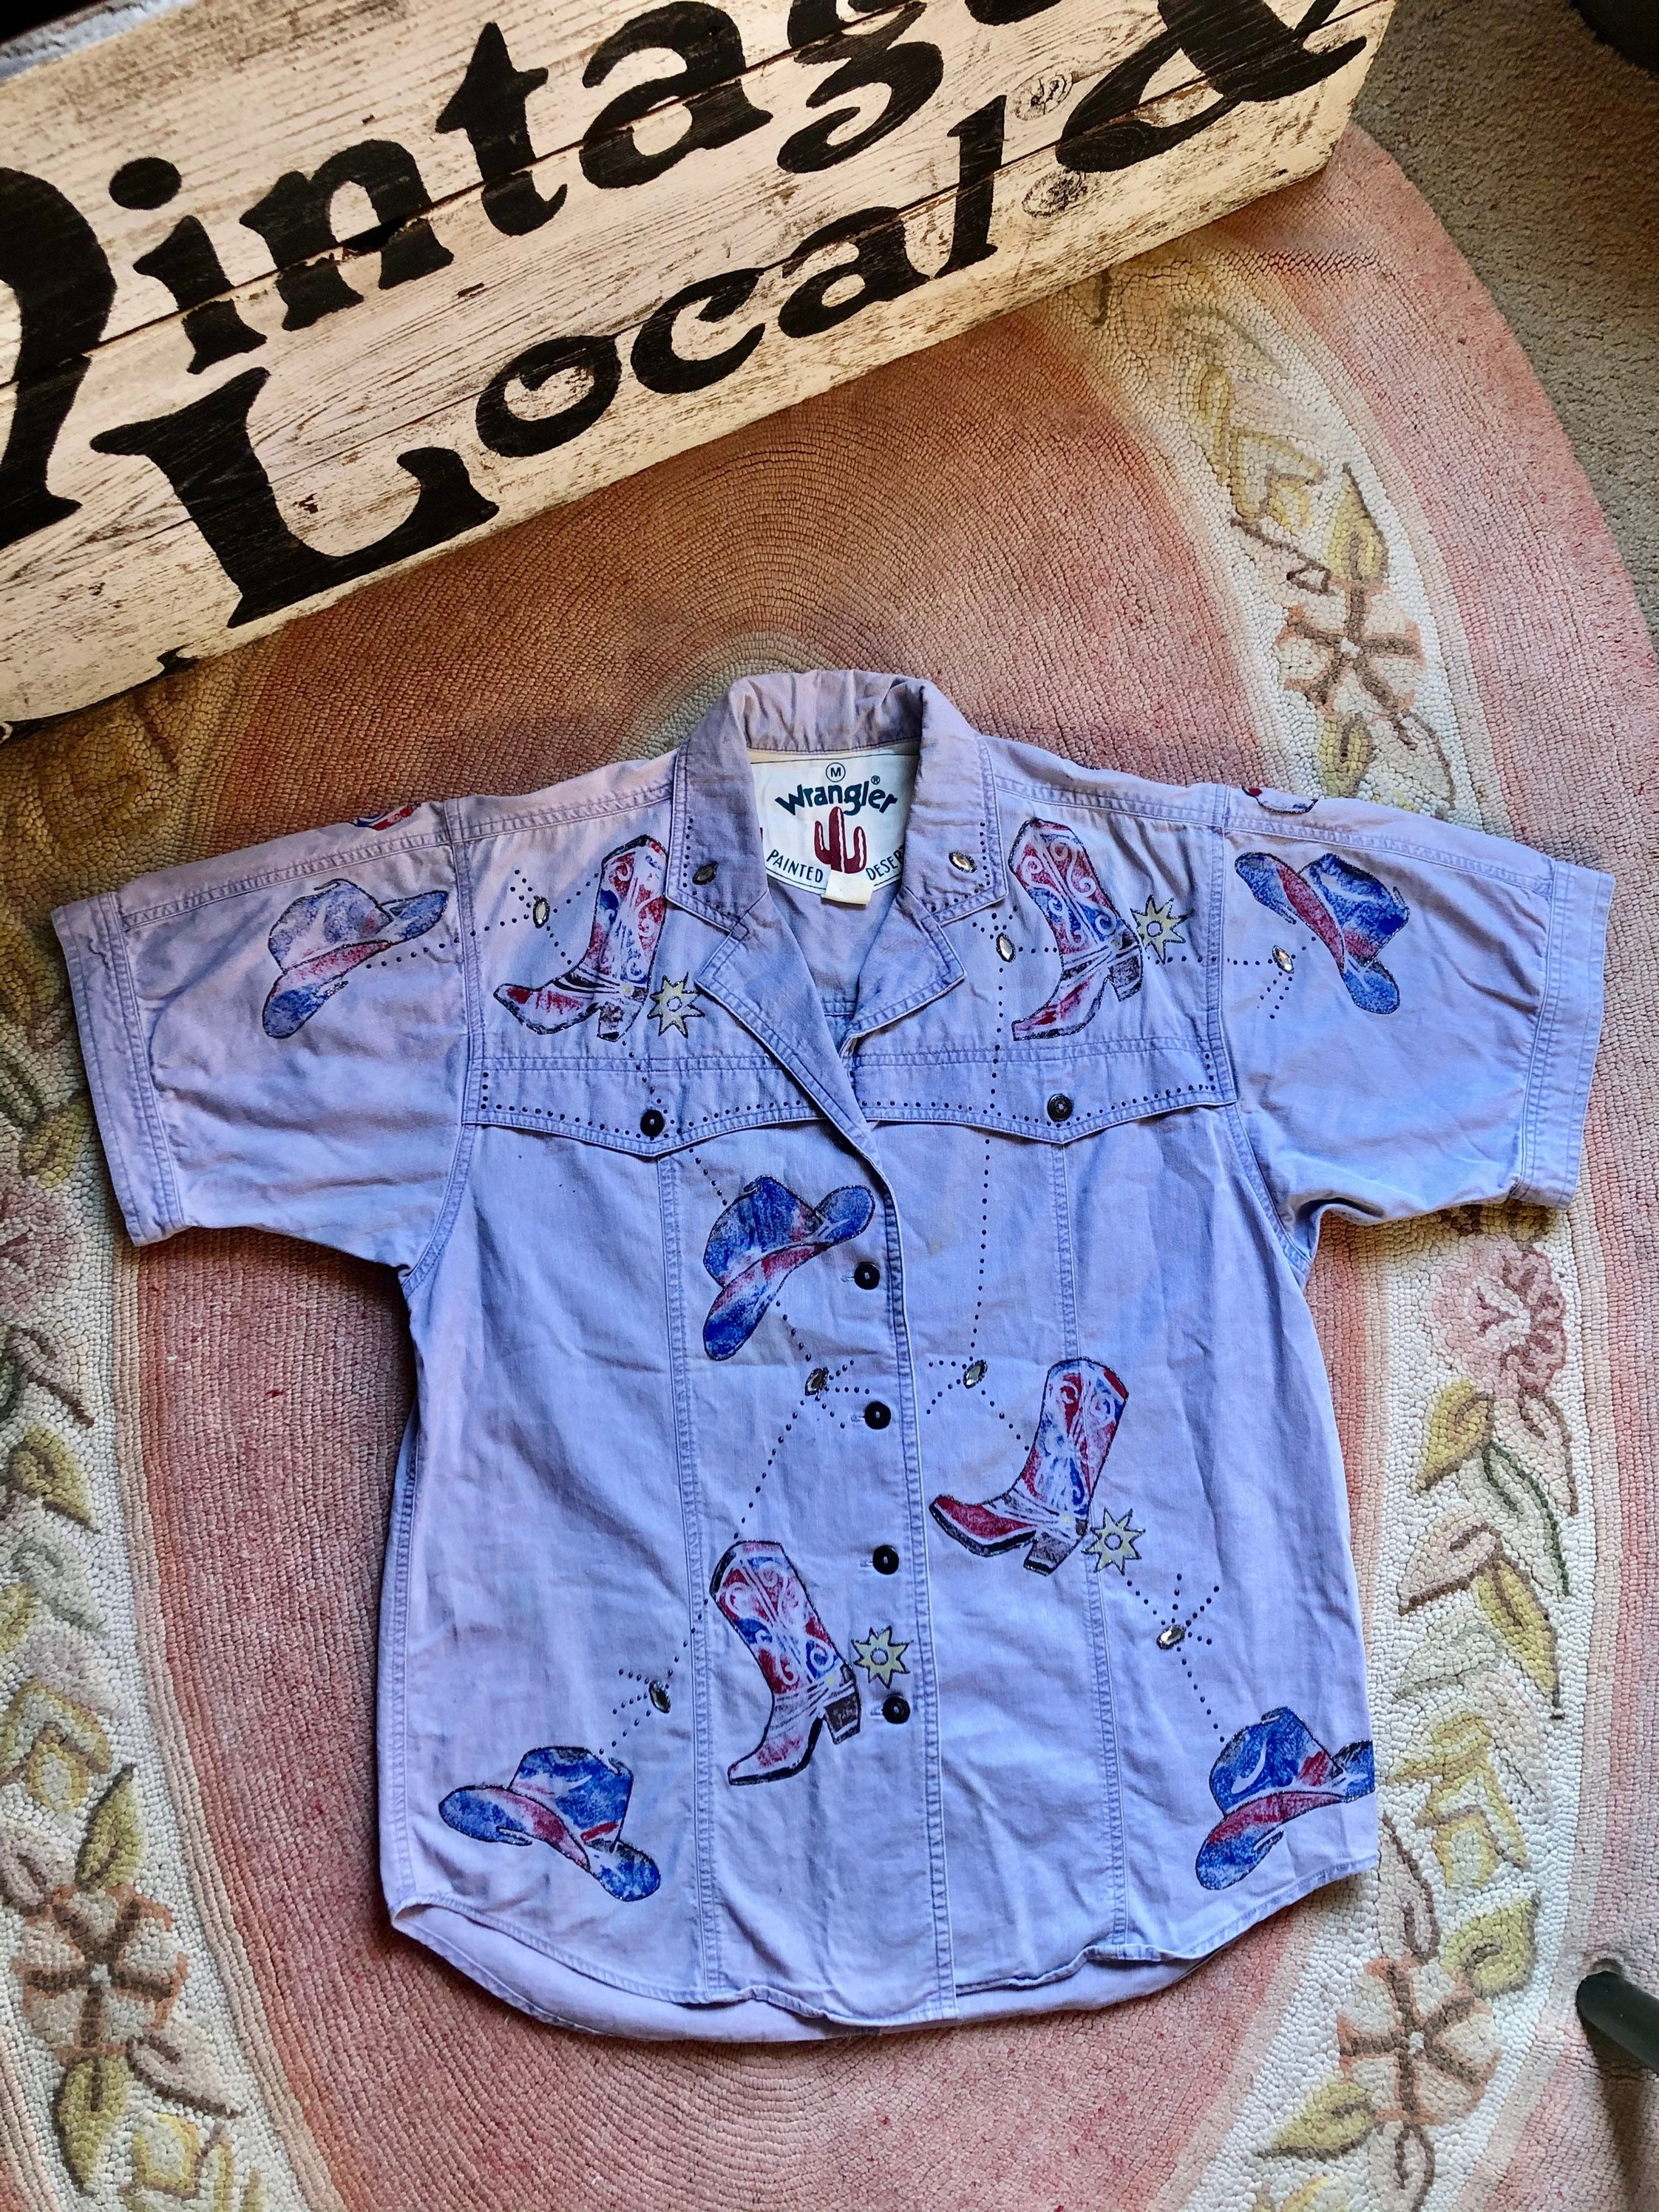 80s Tops, Shirts, T-shirts, Blouse   90s T-shirts Fun 1980s Vintage Wrangler Western Painted Button Up Womens Size MediumLarge $44.00 AT vintagedancer.com